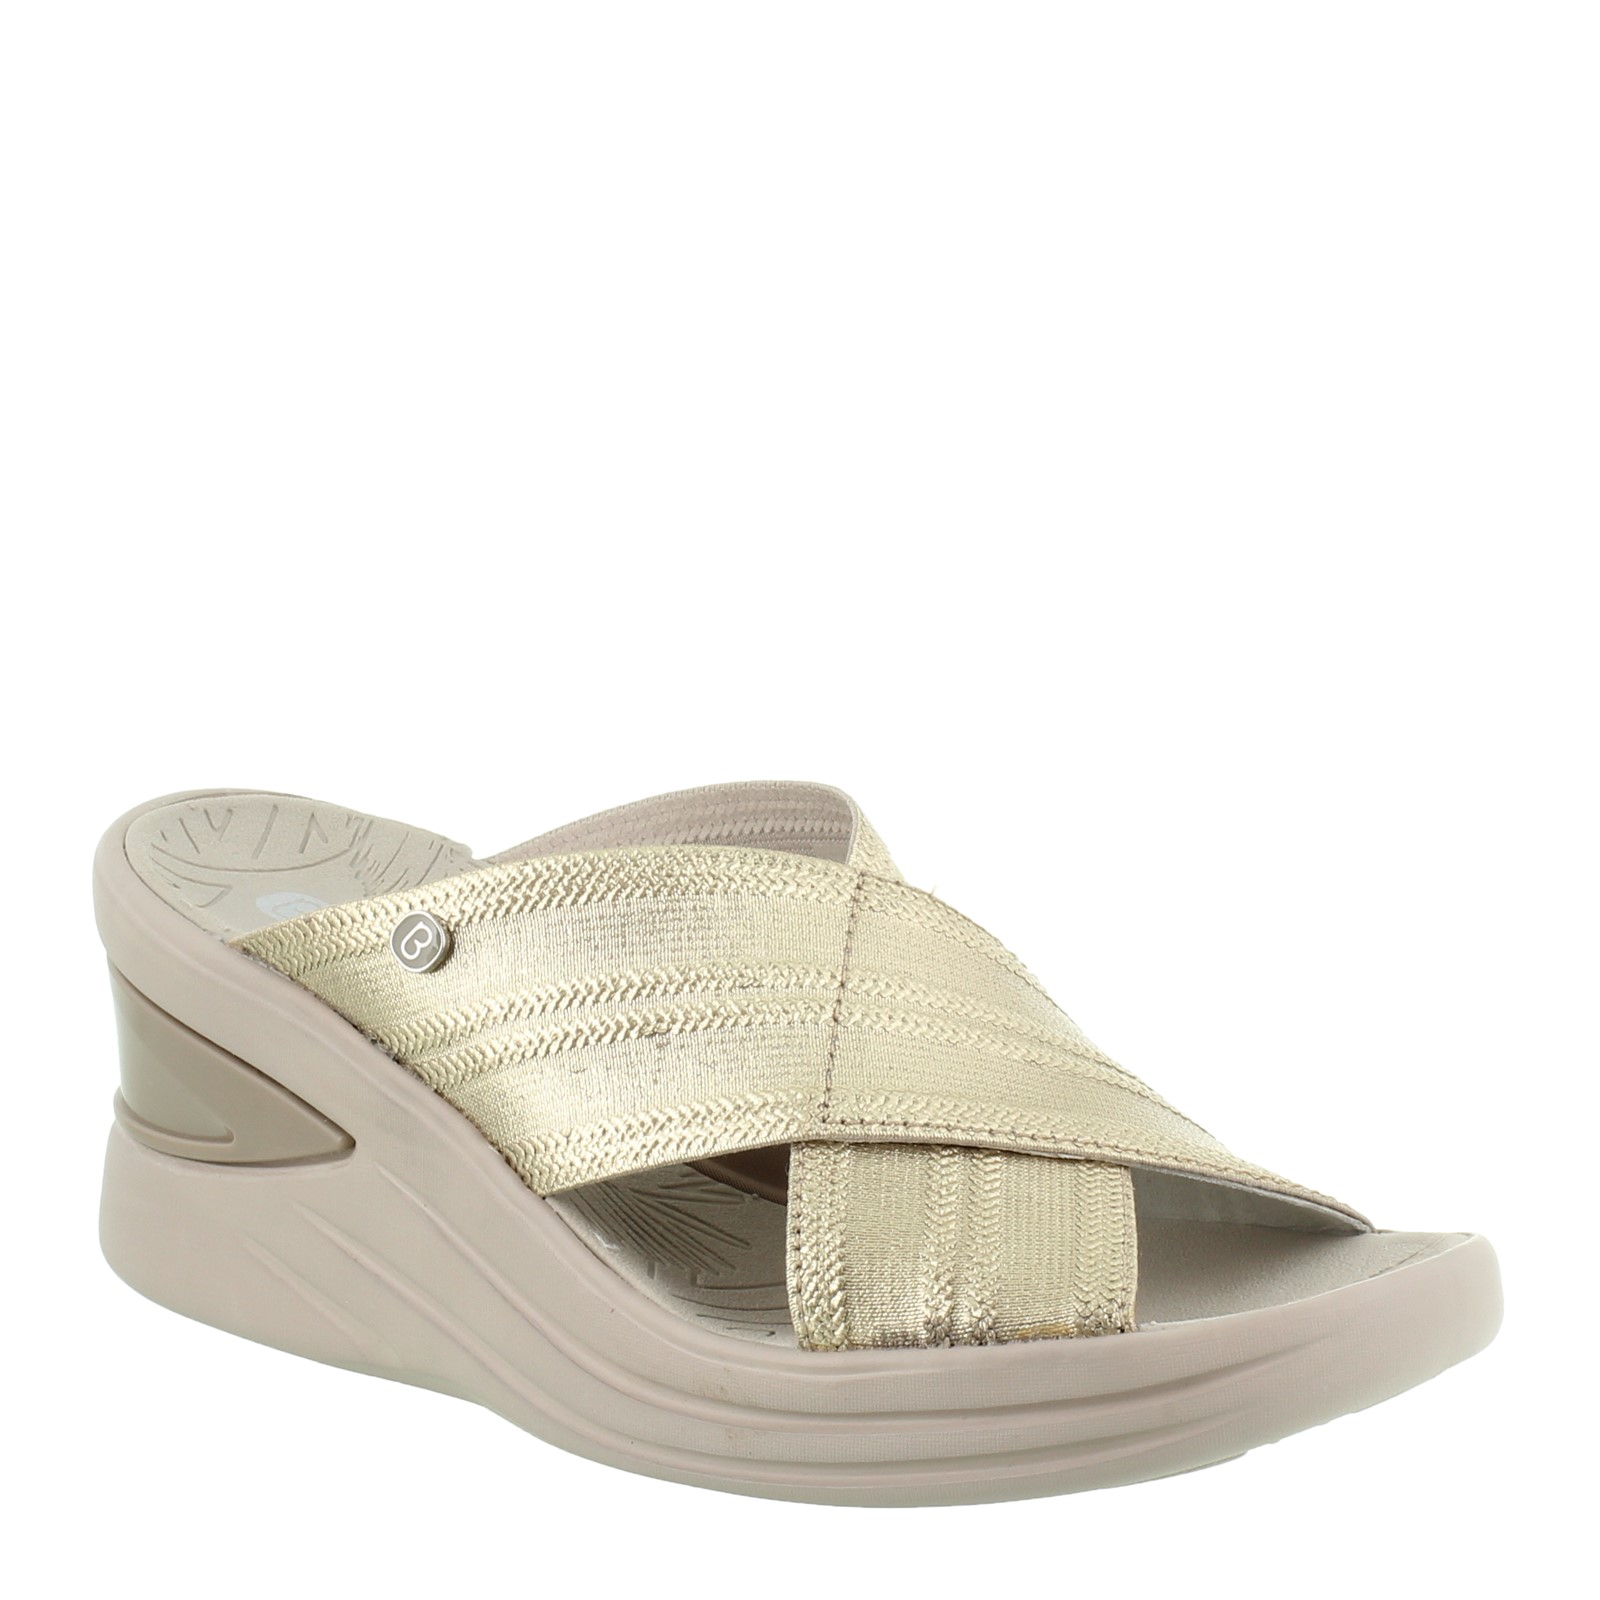 Women's Bzees, Vista Slide Sandal